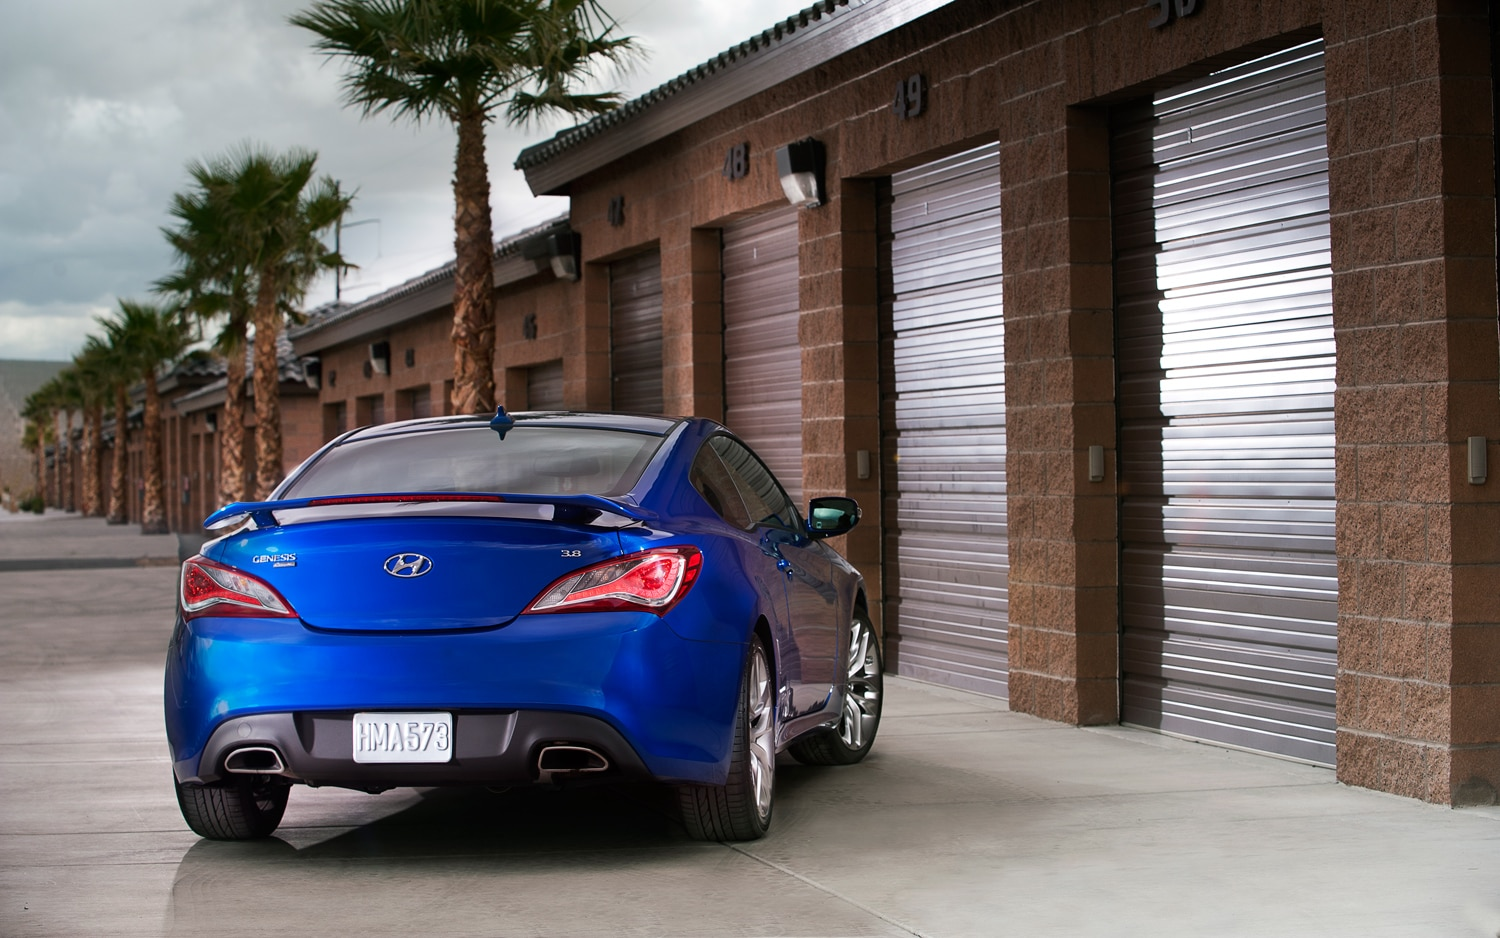 For 2013 the genesis coupe